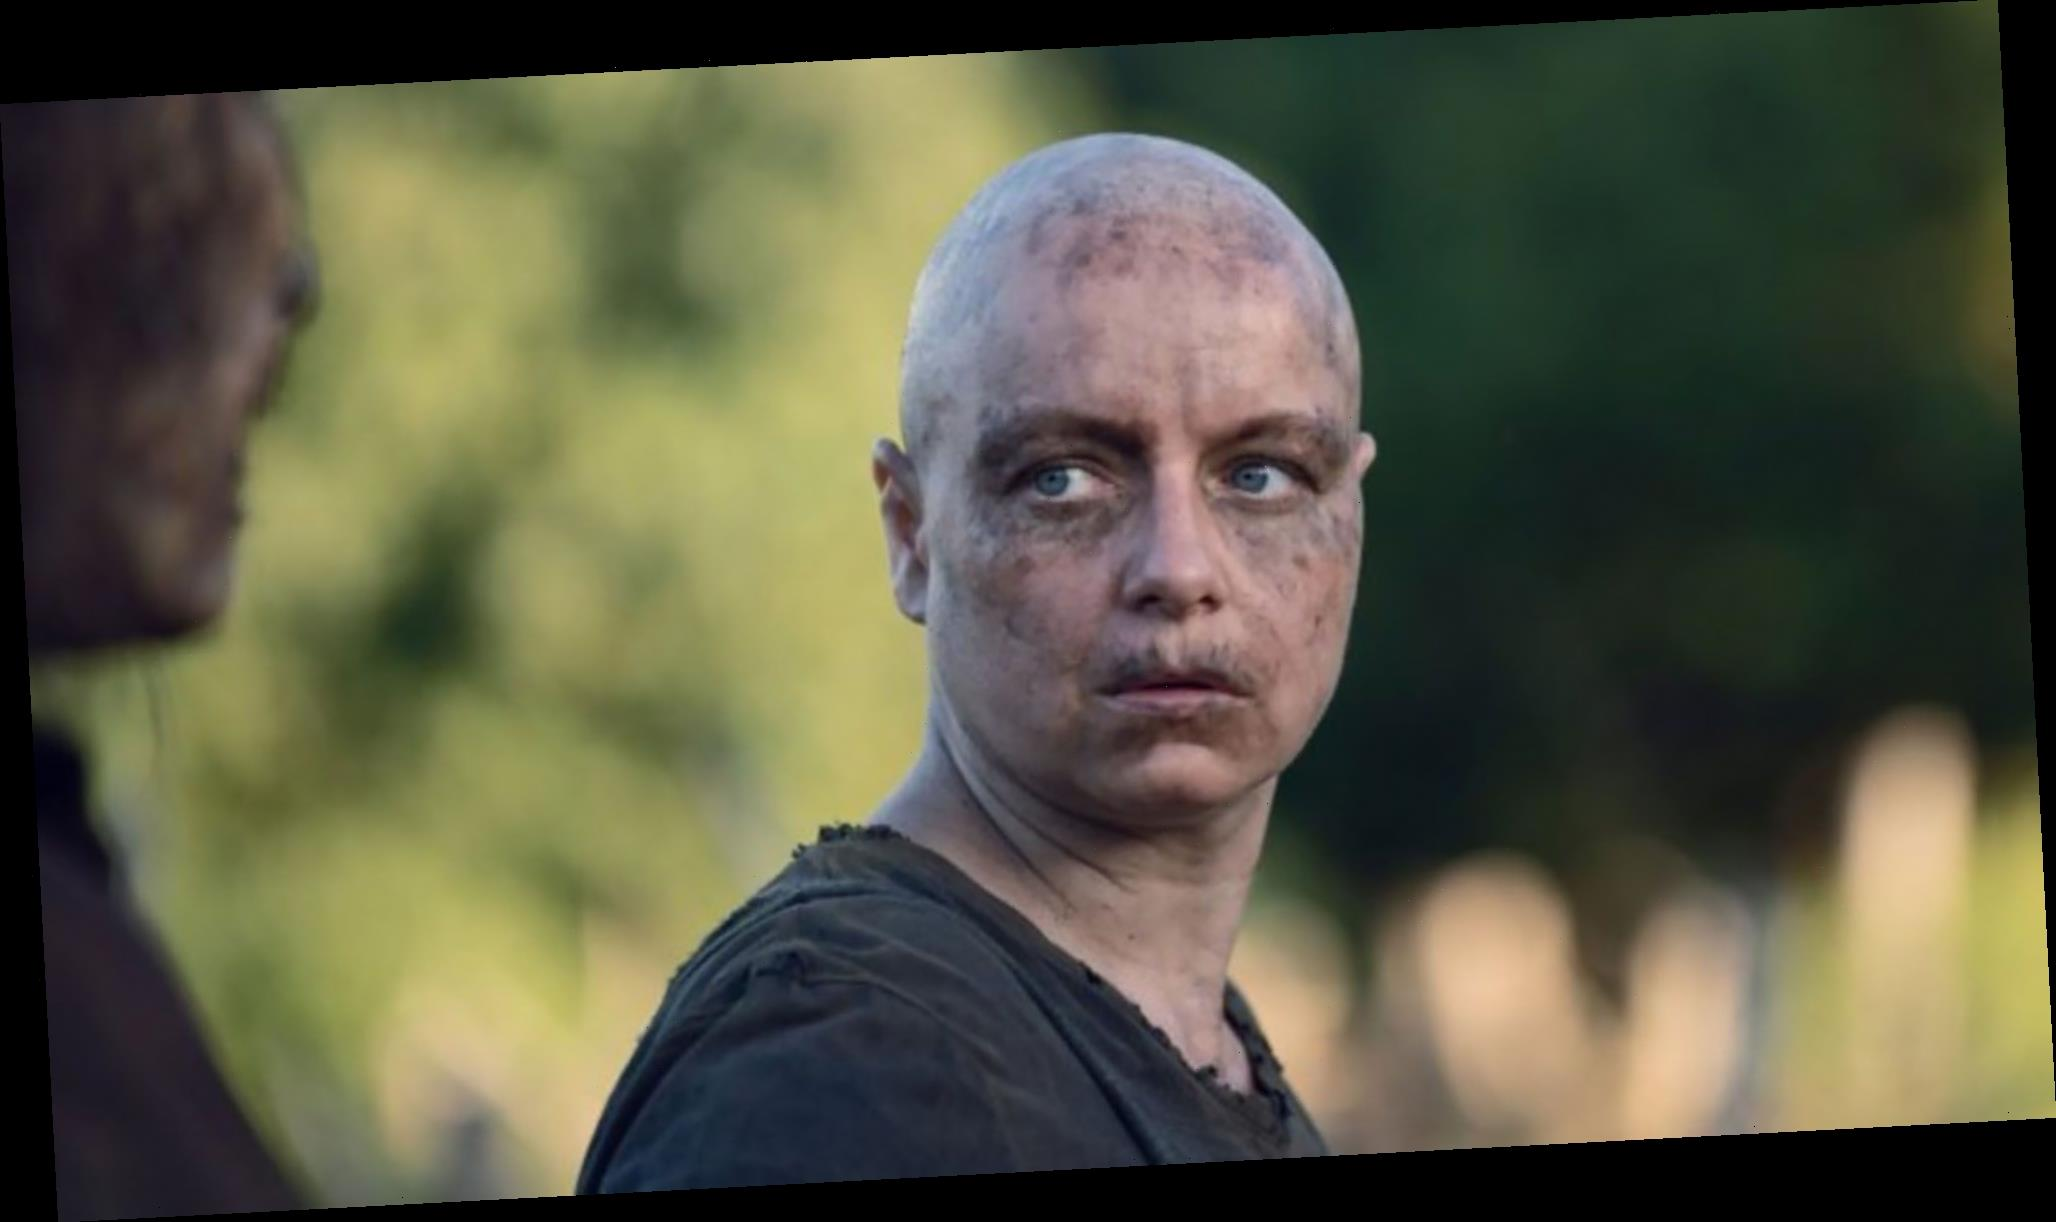 The Walking Dead's Samantha Morton teases 'brutal' season 10 twists as show moves away from comics – The Sun